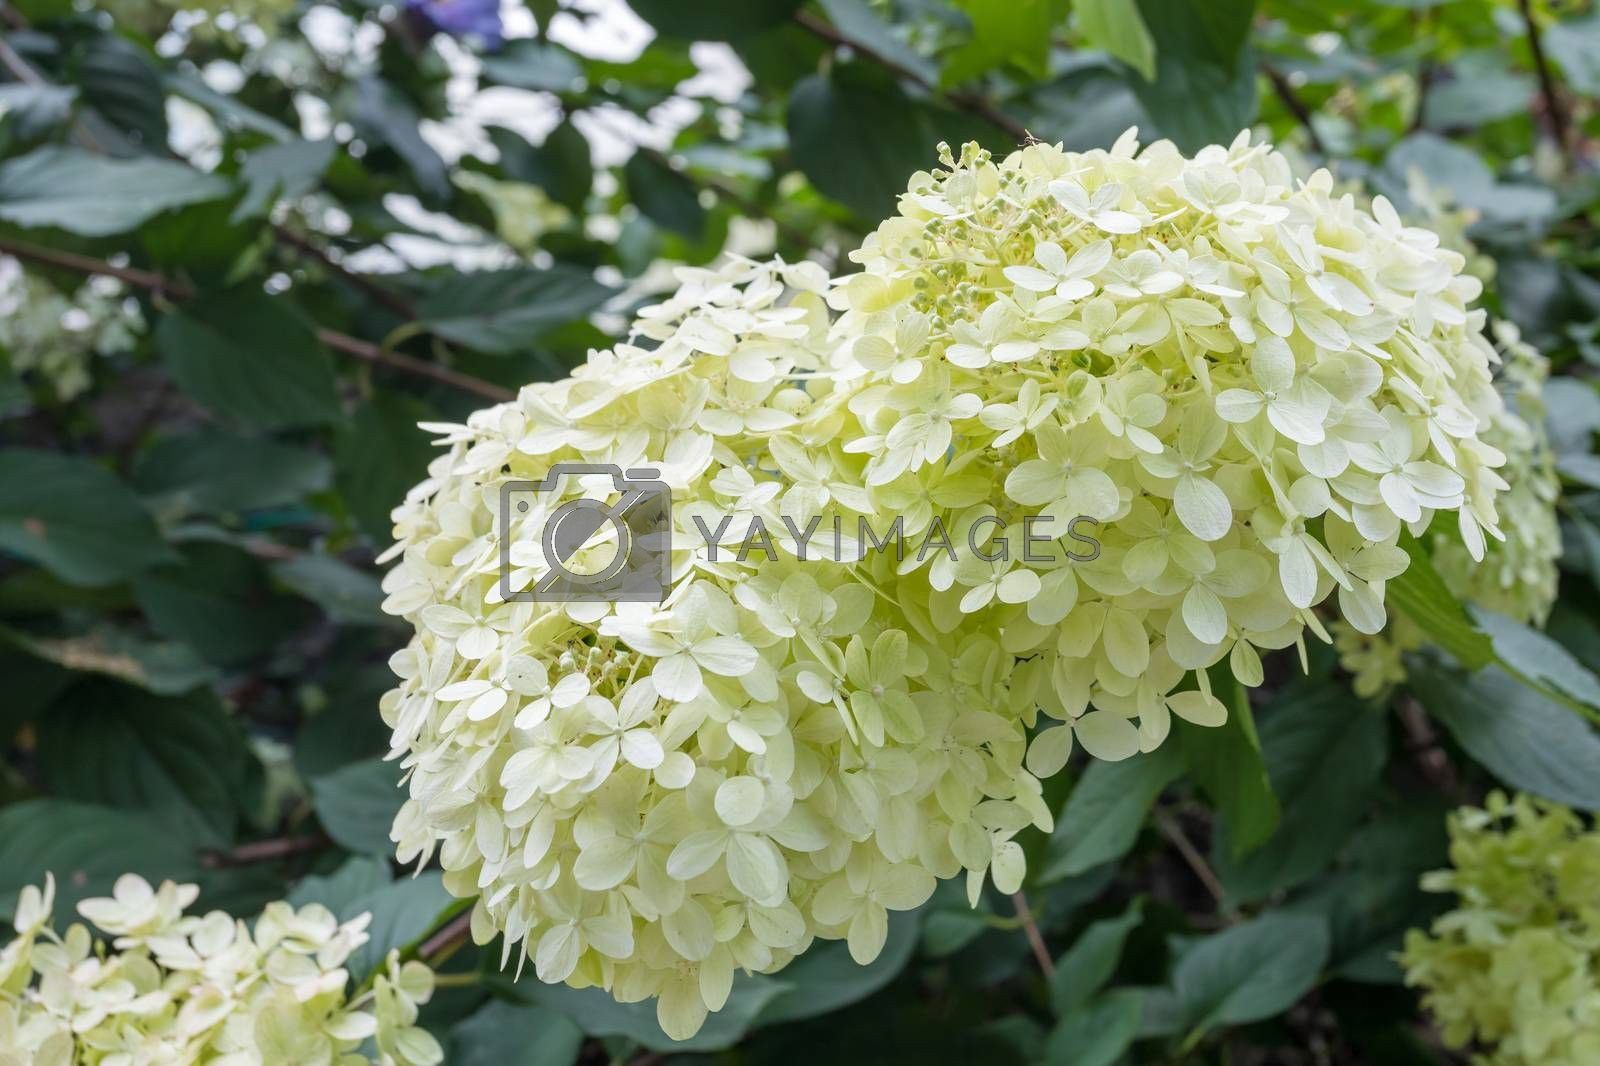 Hydrangea arborescens or Smooth hydrangea with white flowers and green foliage in garden. detail view of flowering plant